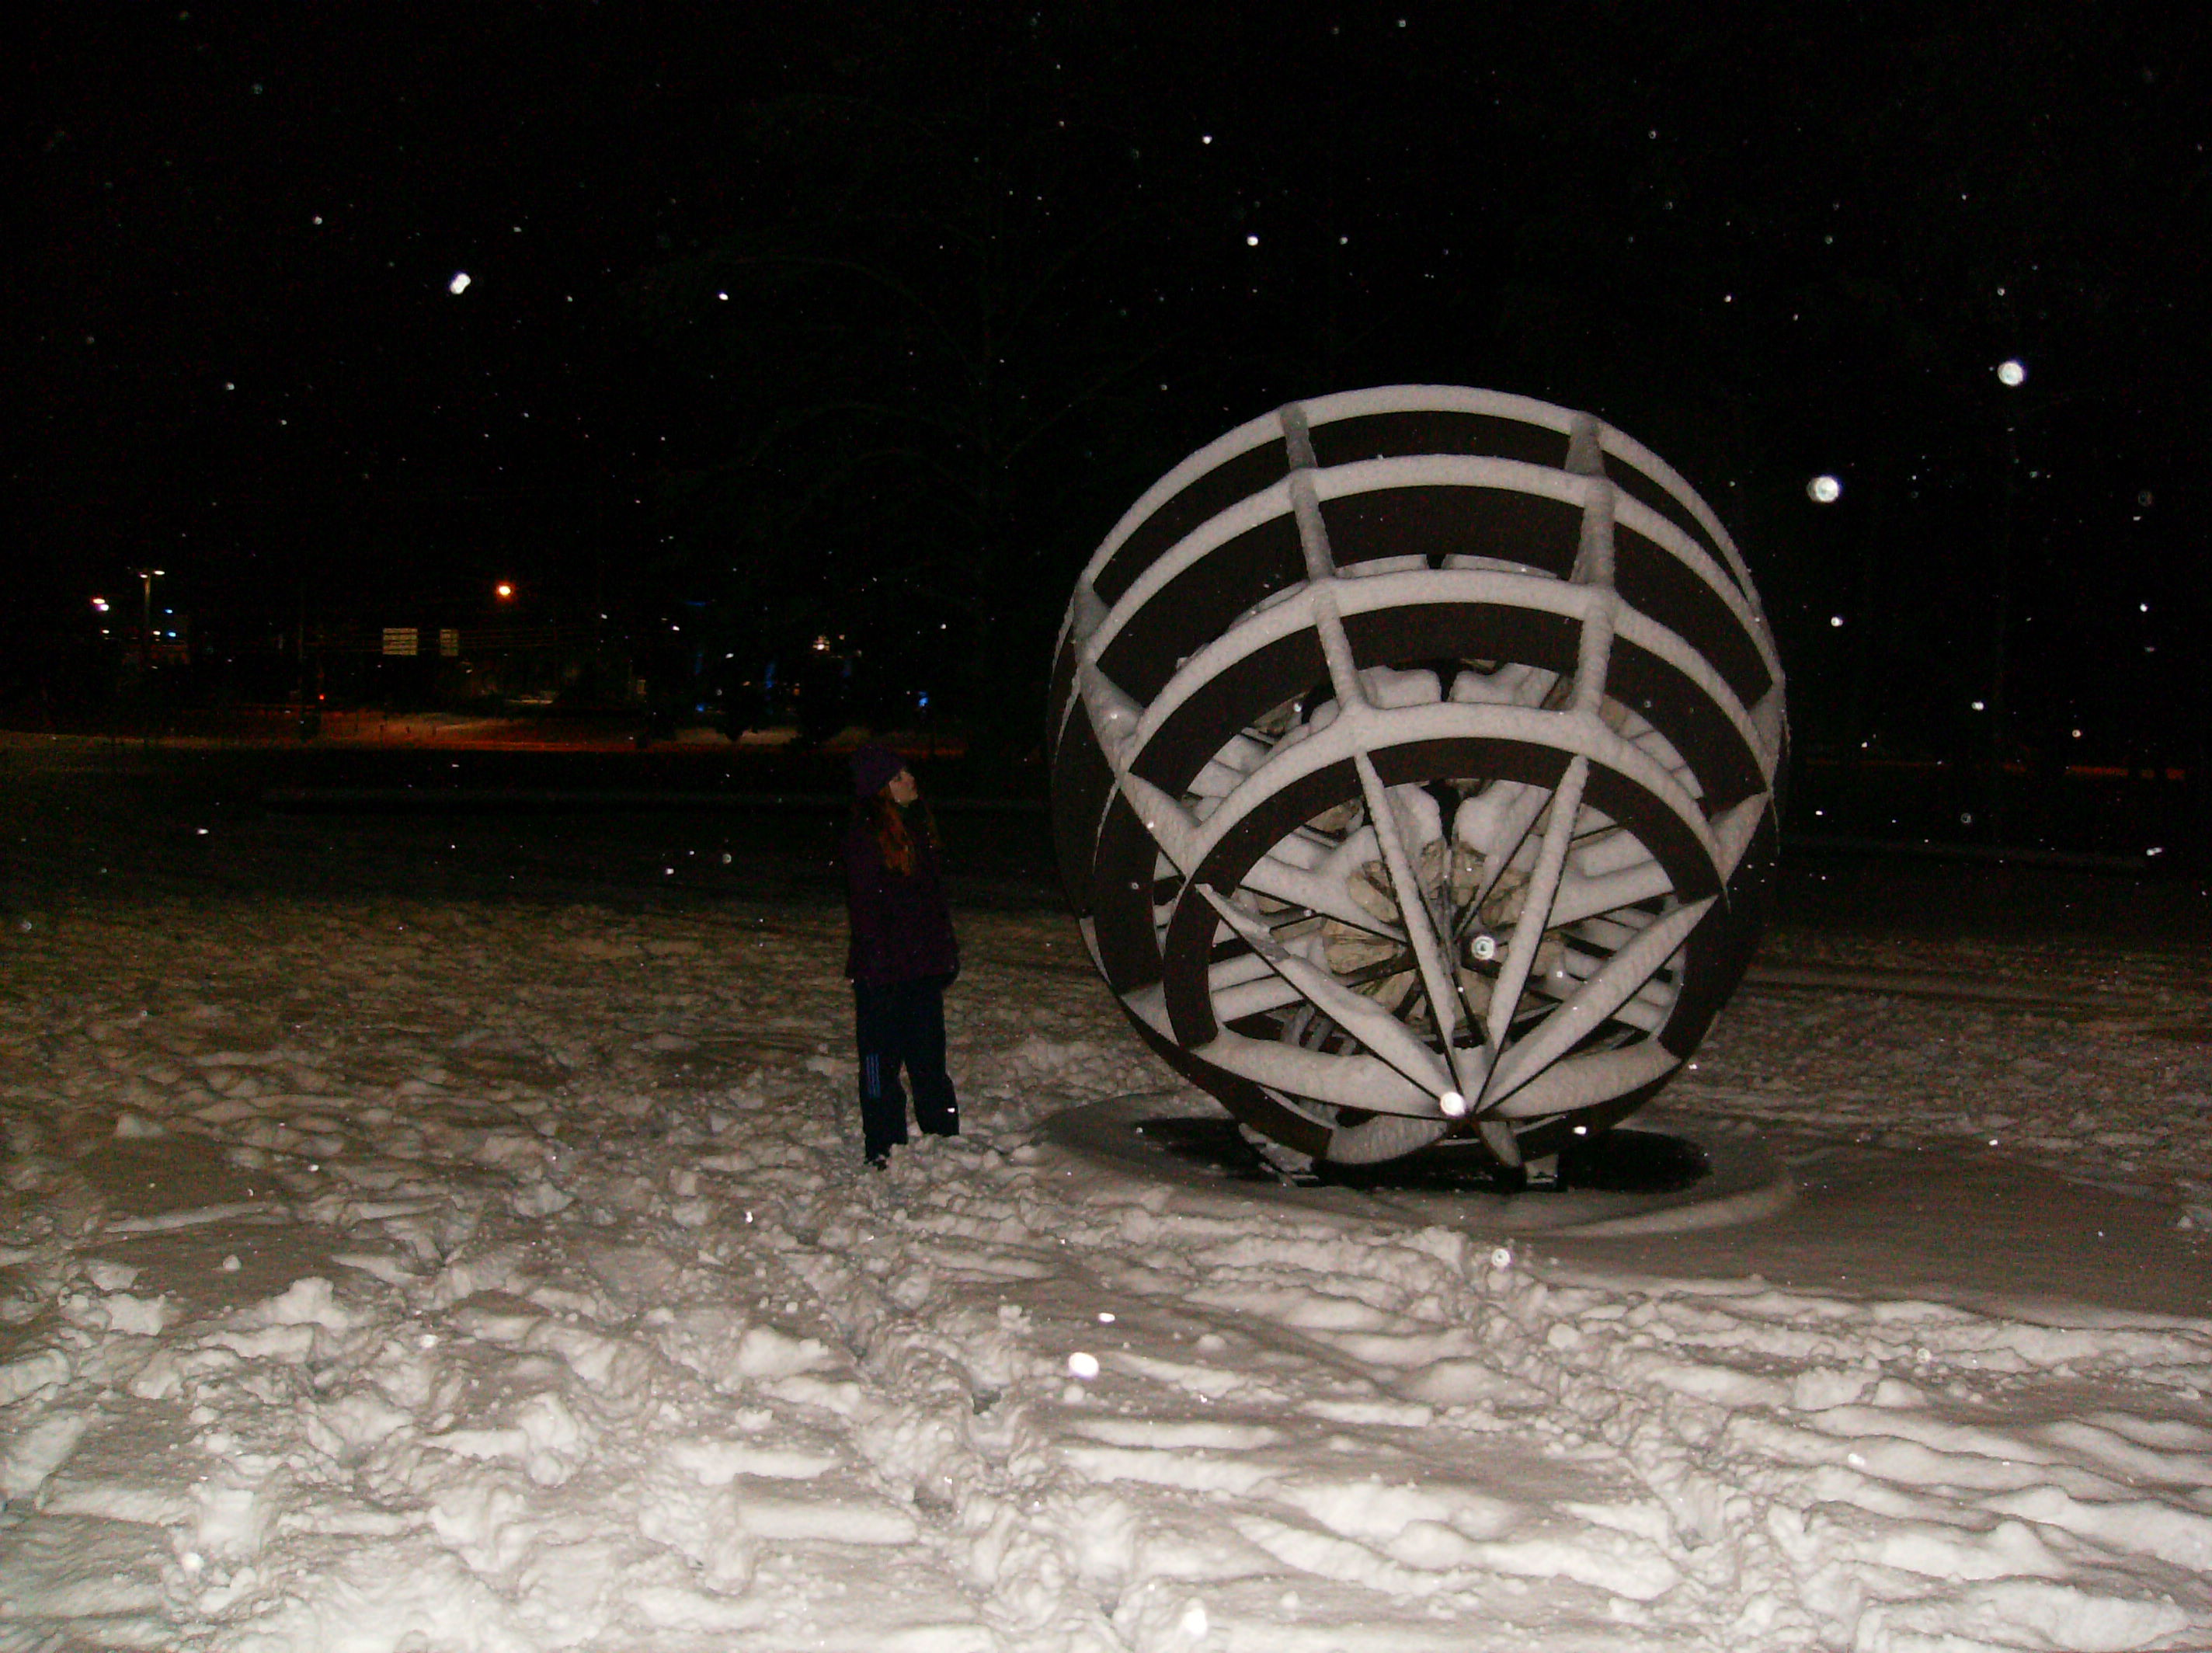 The Geode outside of the Library, covered in snow